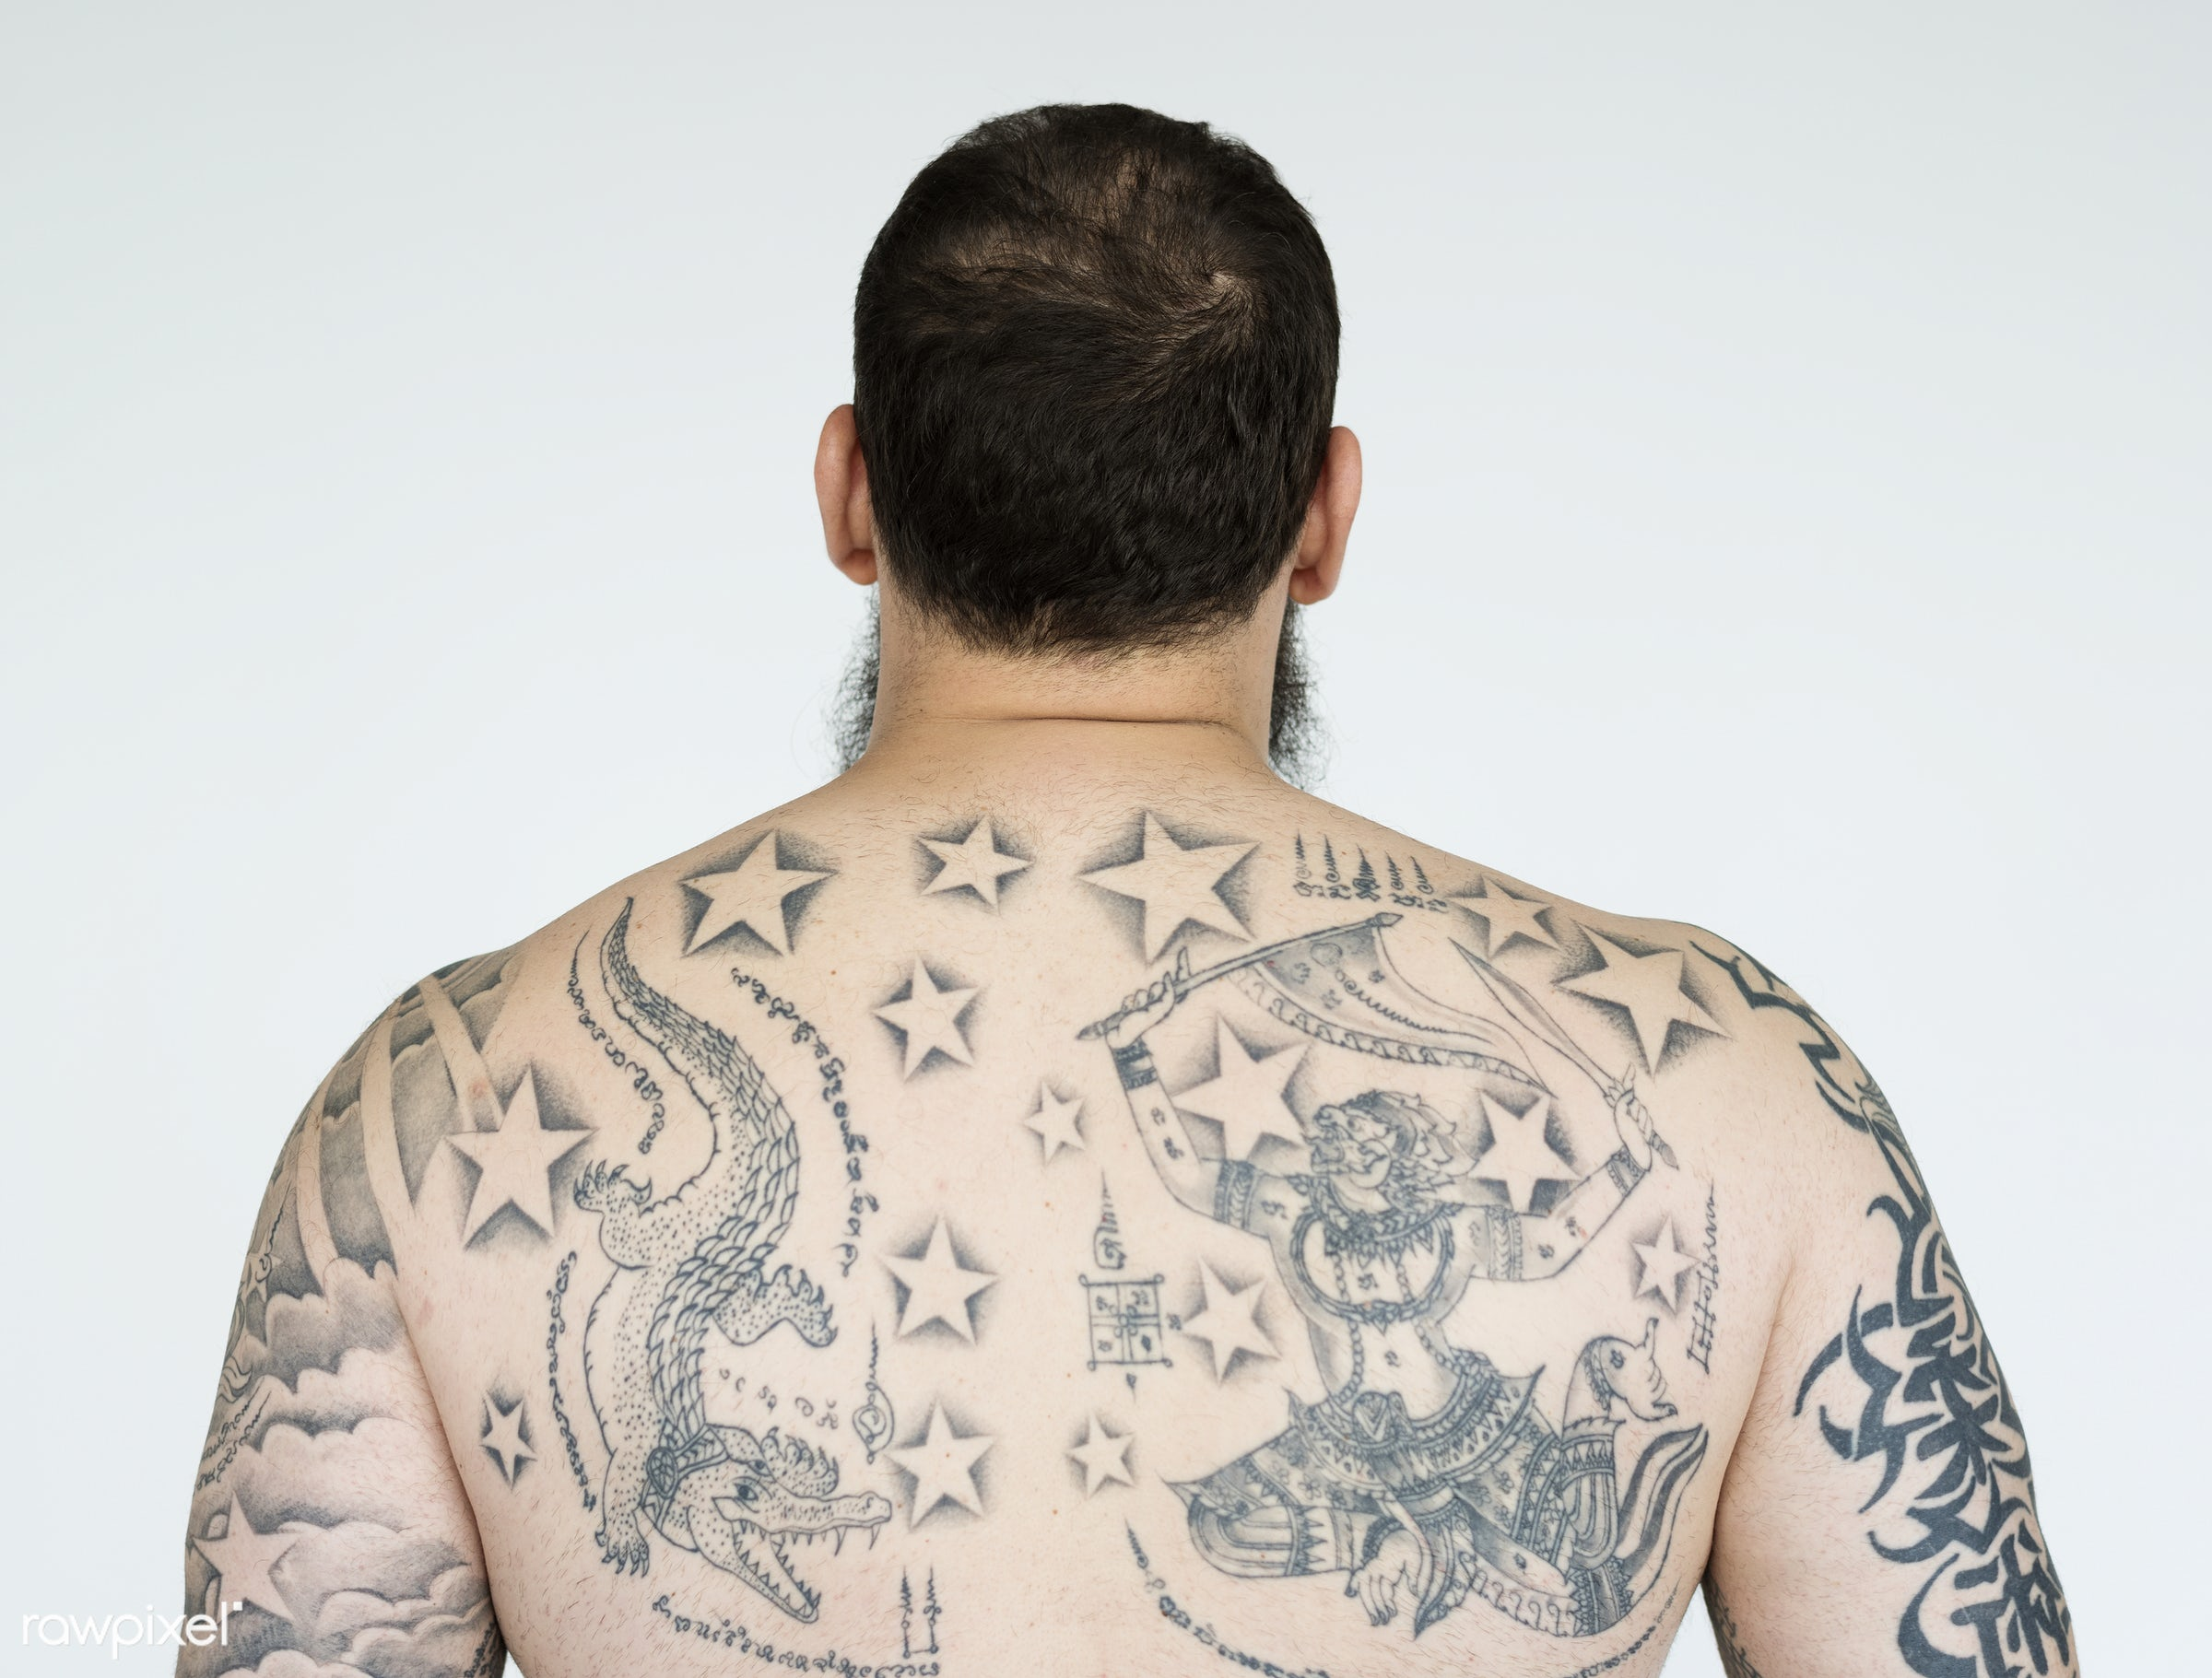 studio, expression, person, model, isolated on white, people, race, style, casual, lifestyle, men, tattoo, man, isolated,...